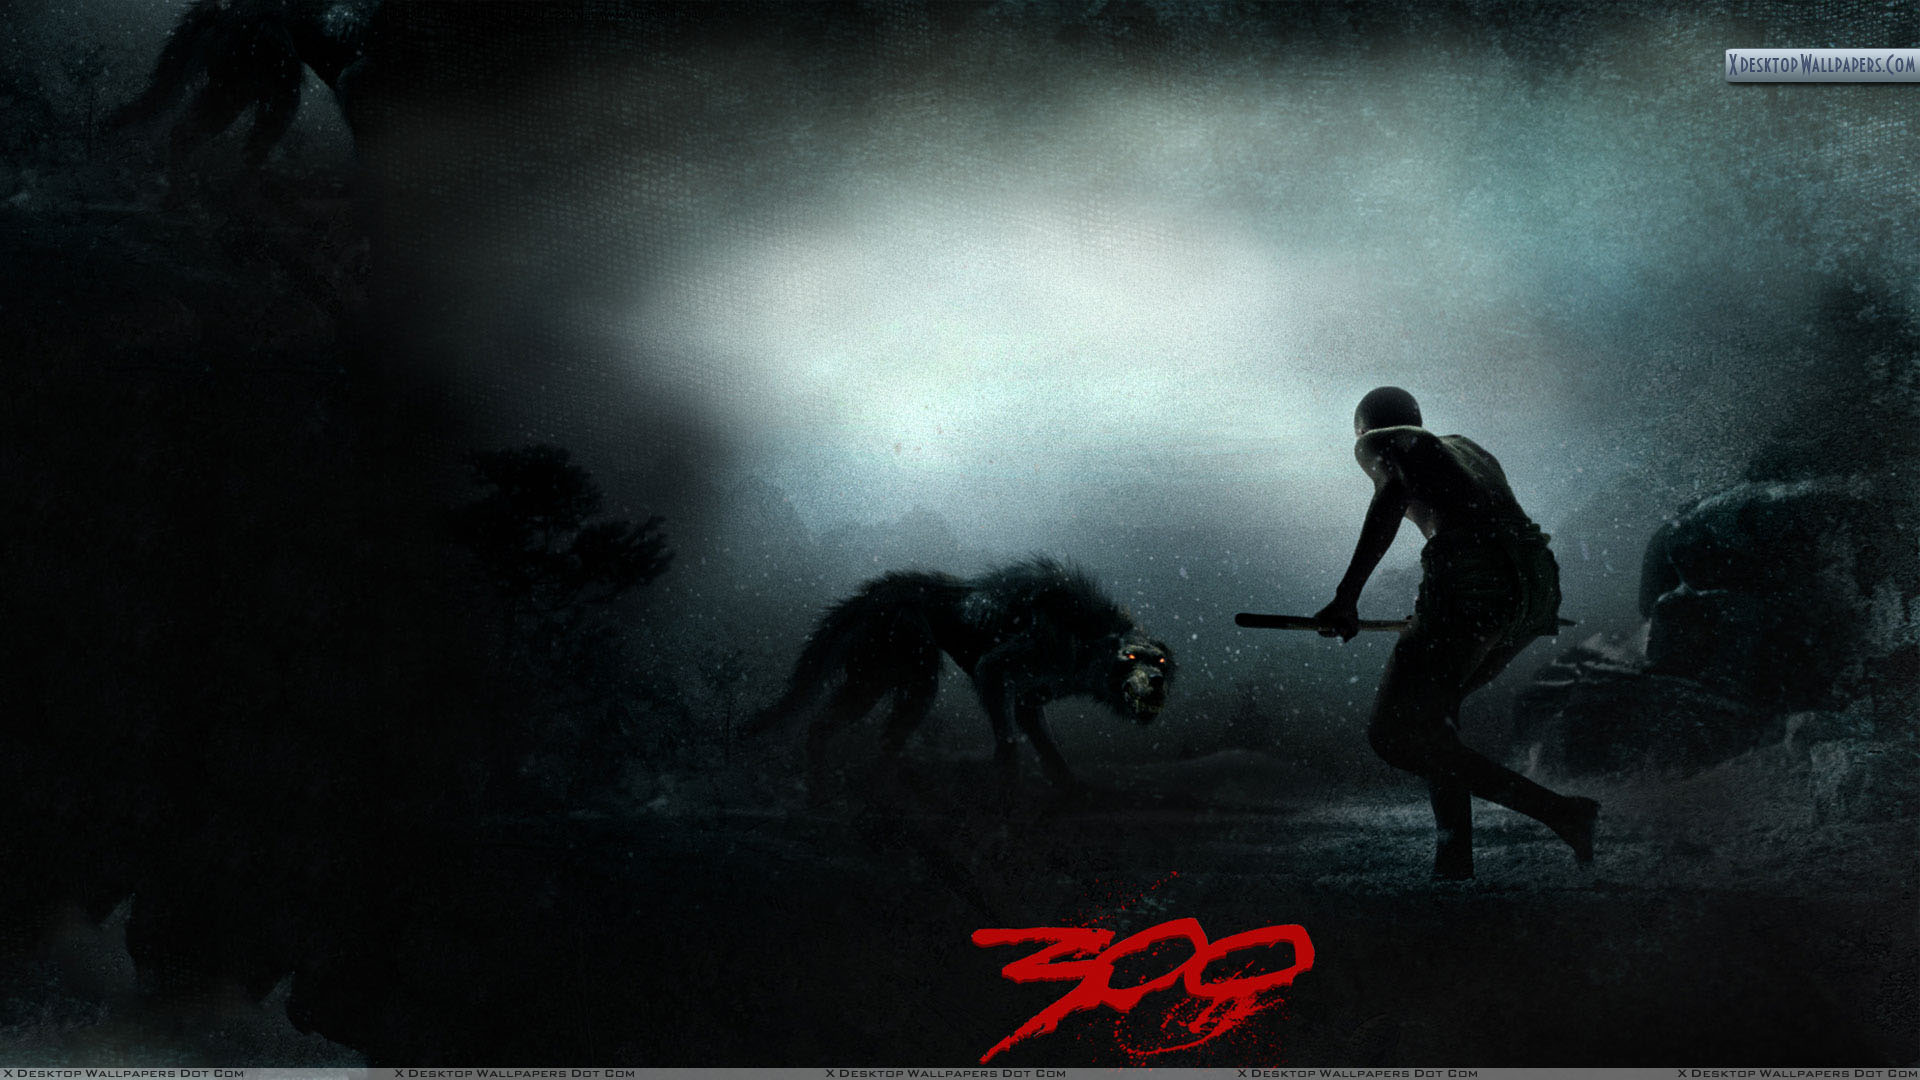 300 hunting the wolf wallpaper